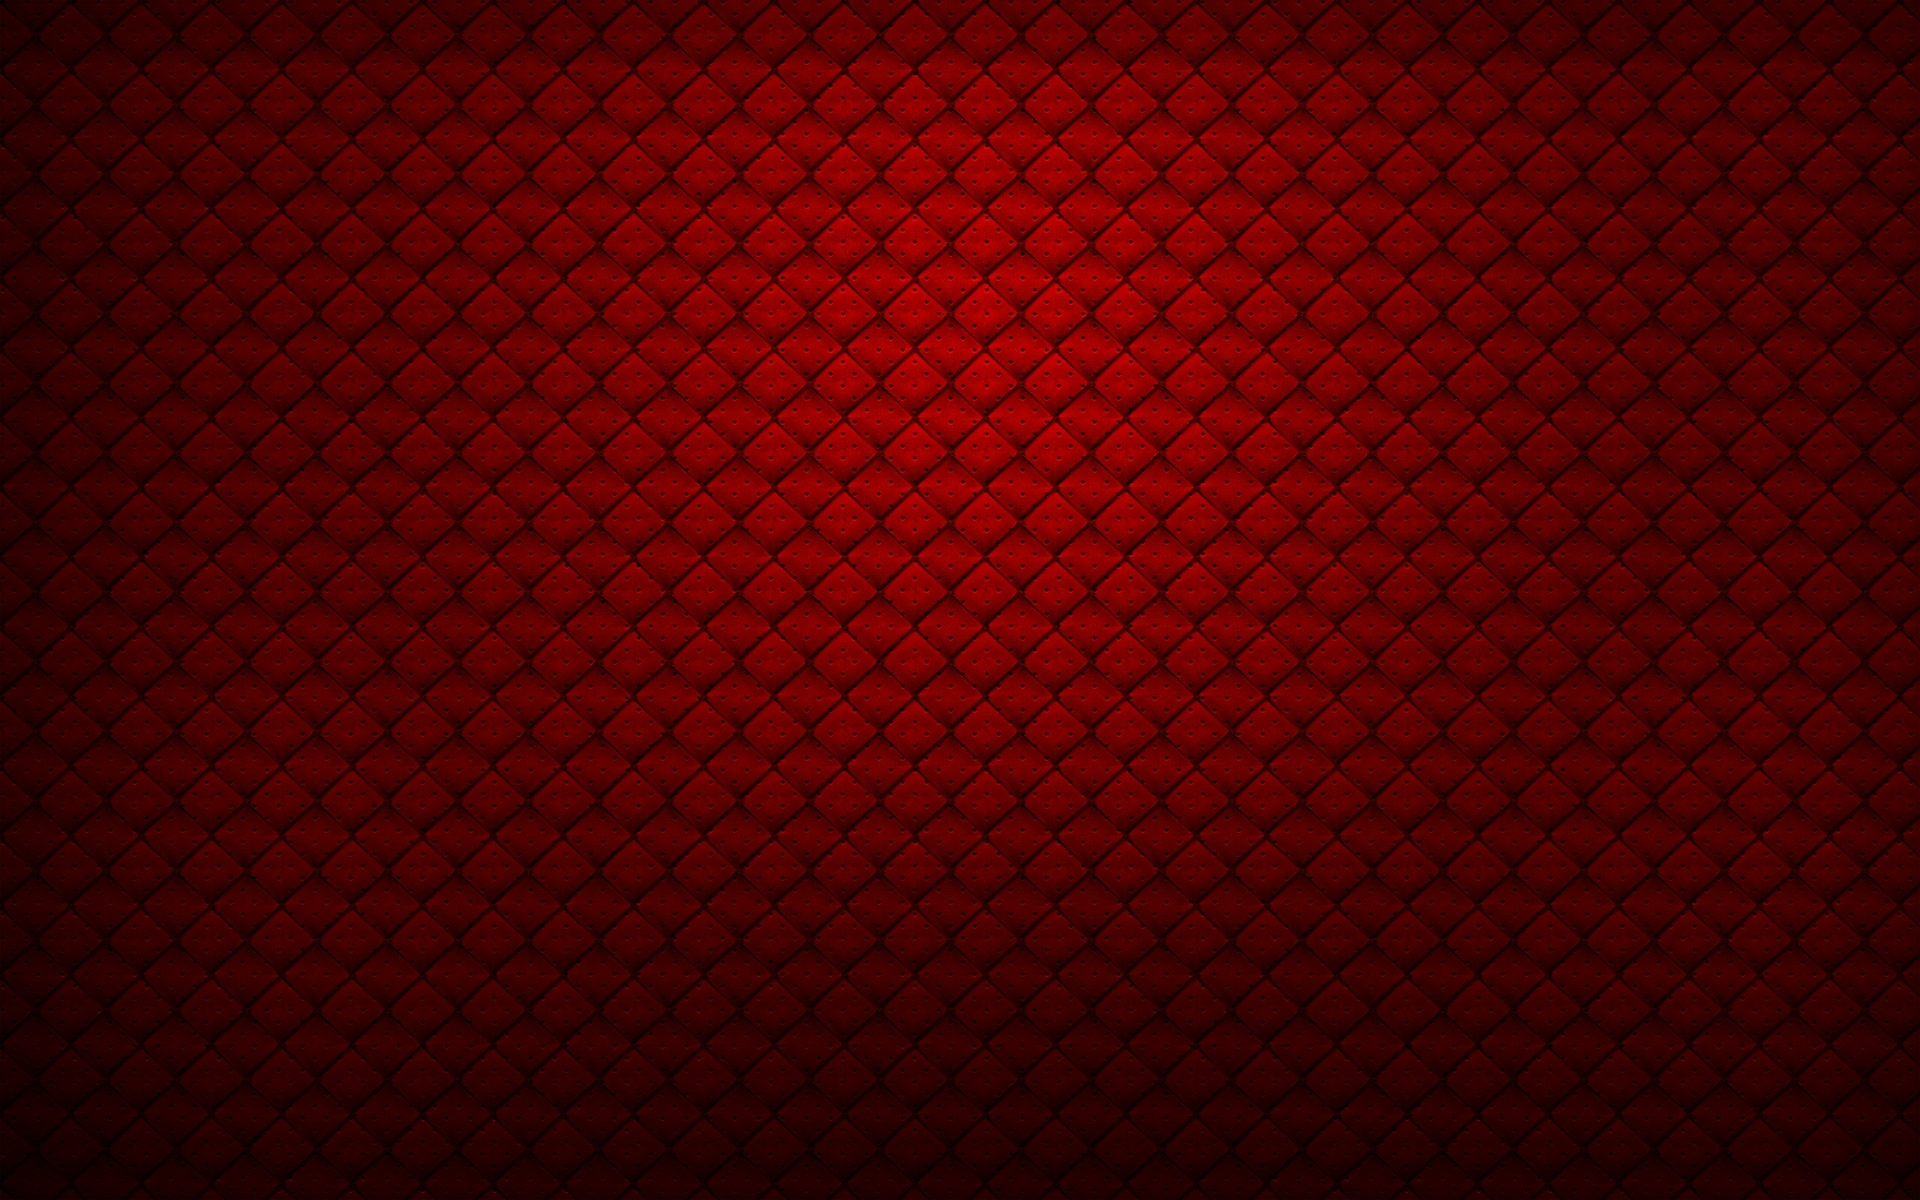 3d Colour Wallpaper Free Download Free Red Wallpaper 41355 1920x1200 Px Hdwallsource Com